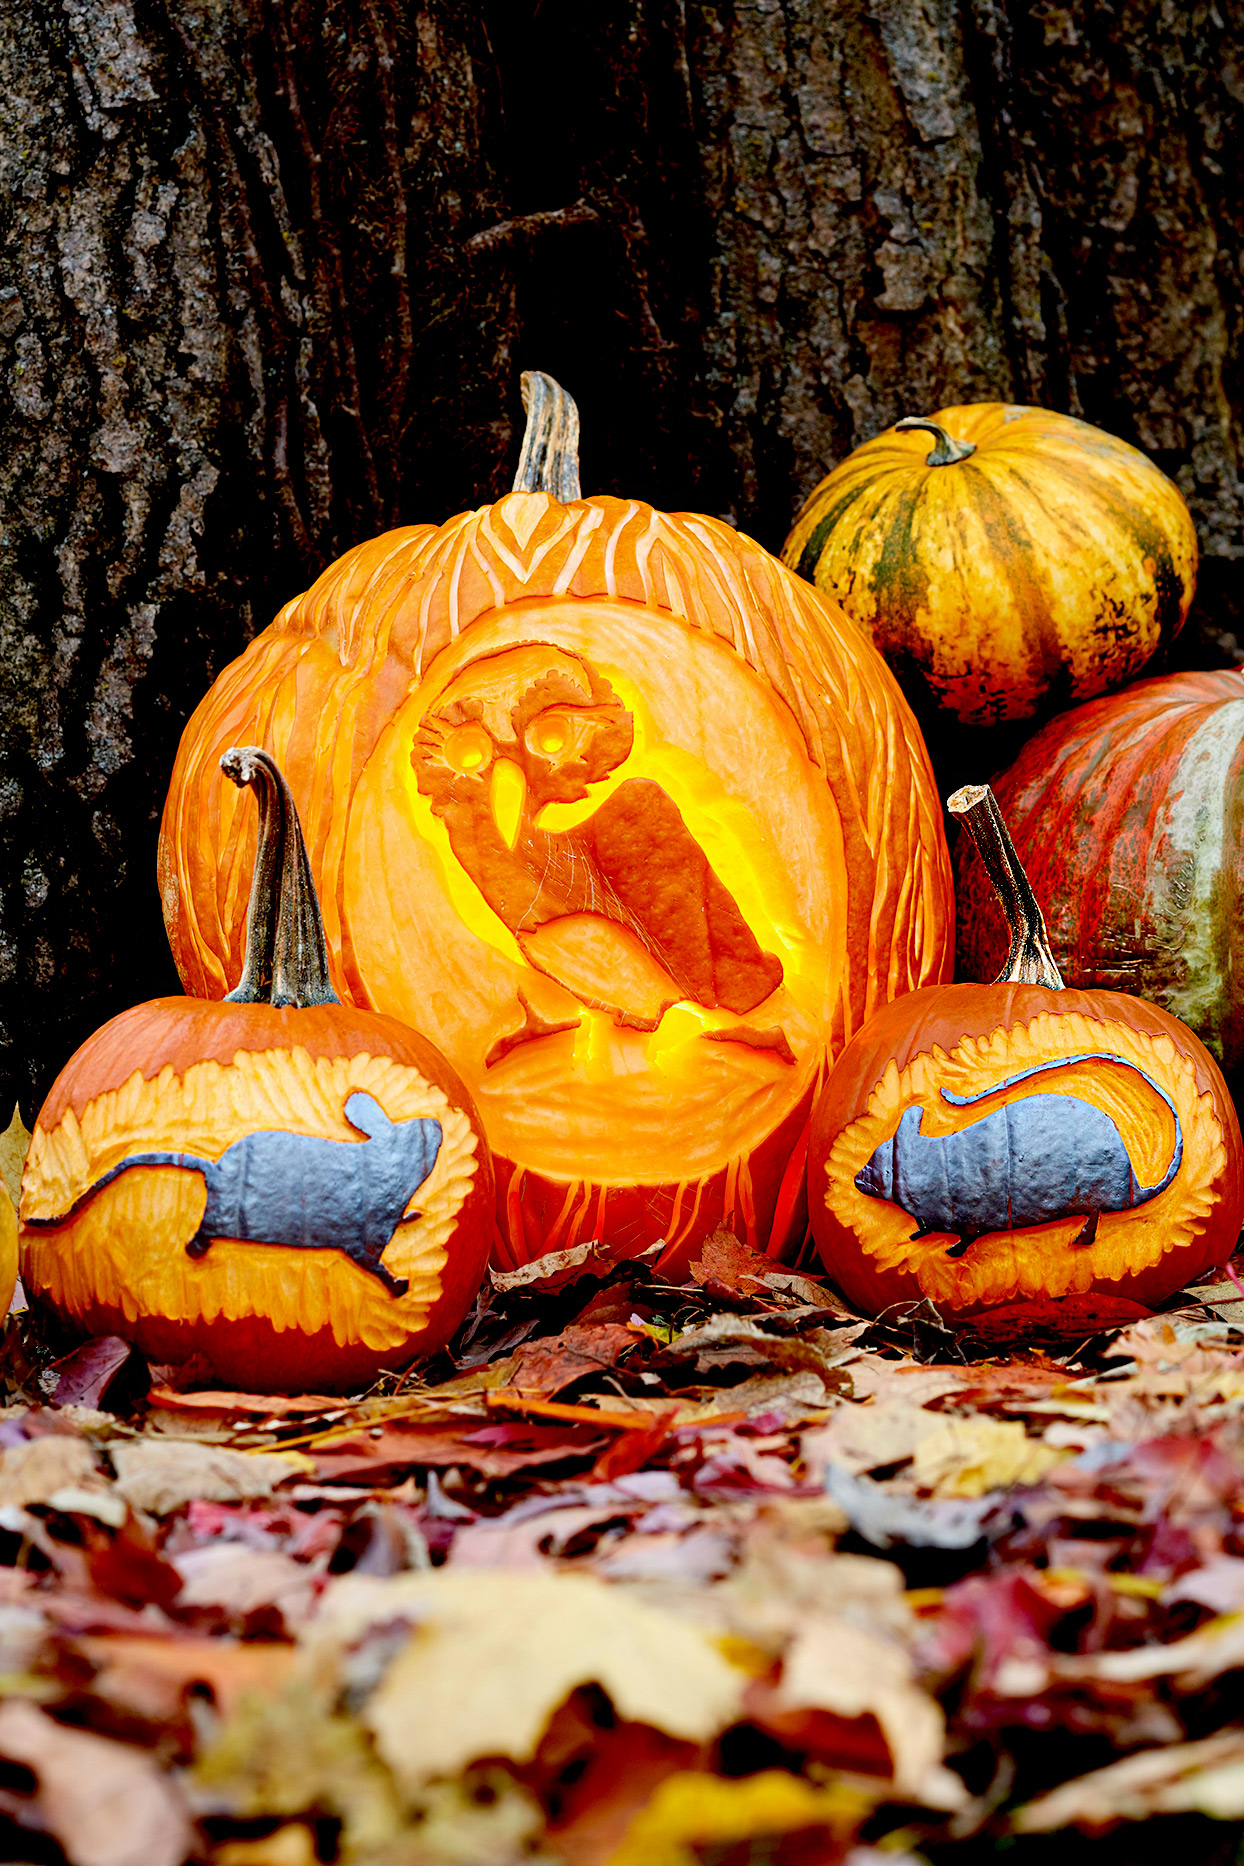 The Most Iconic Halloween Pumpkin Stencils